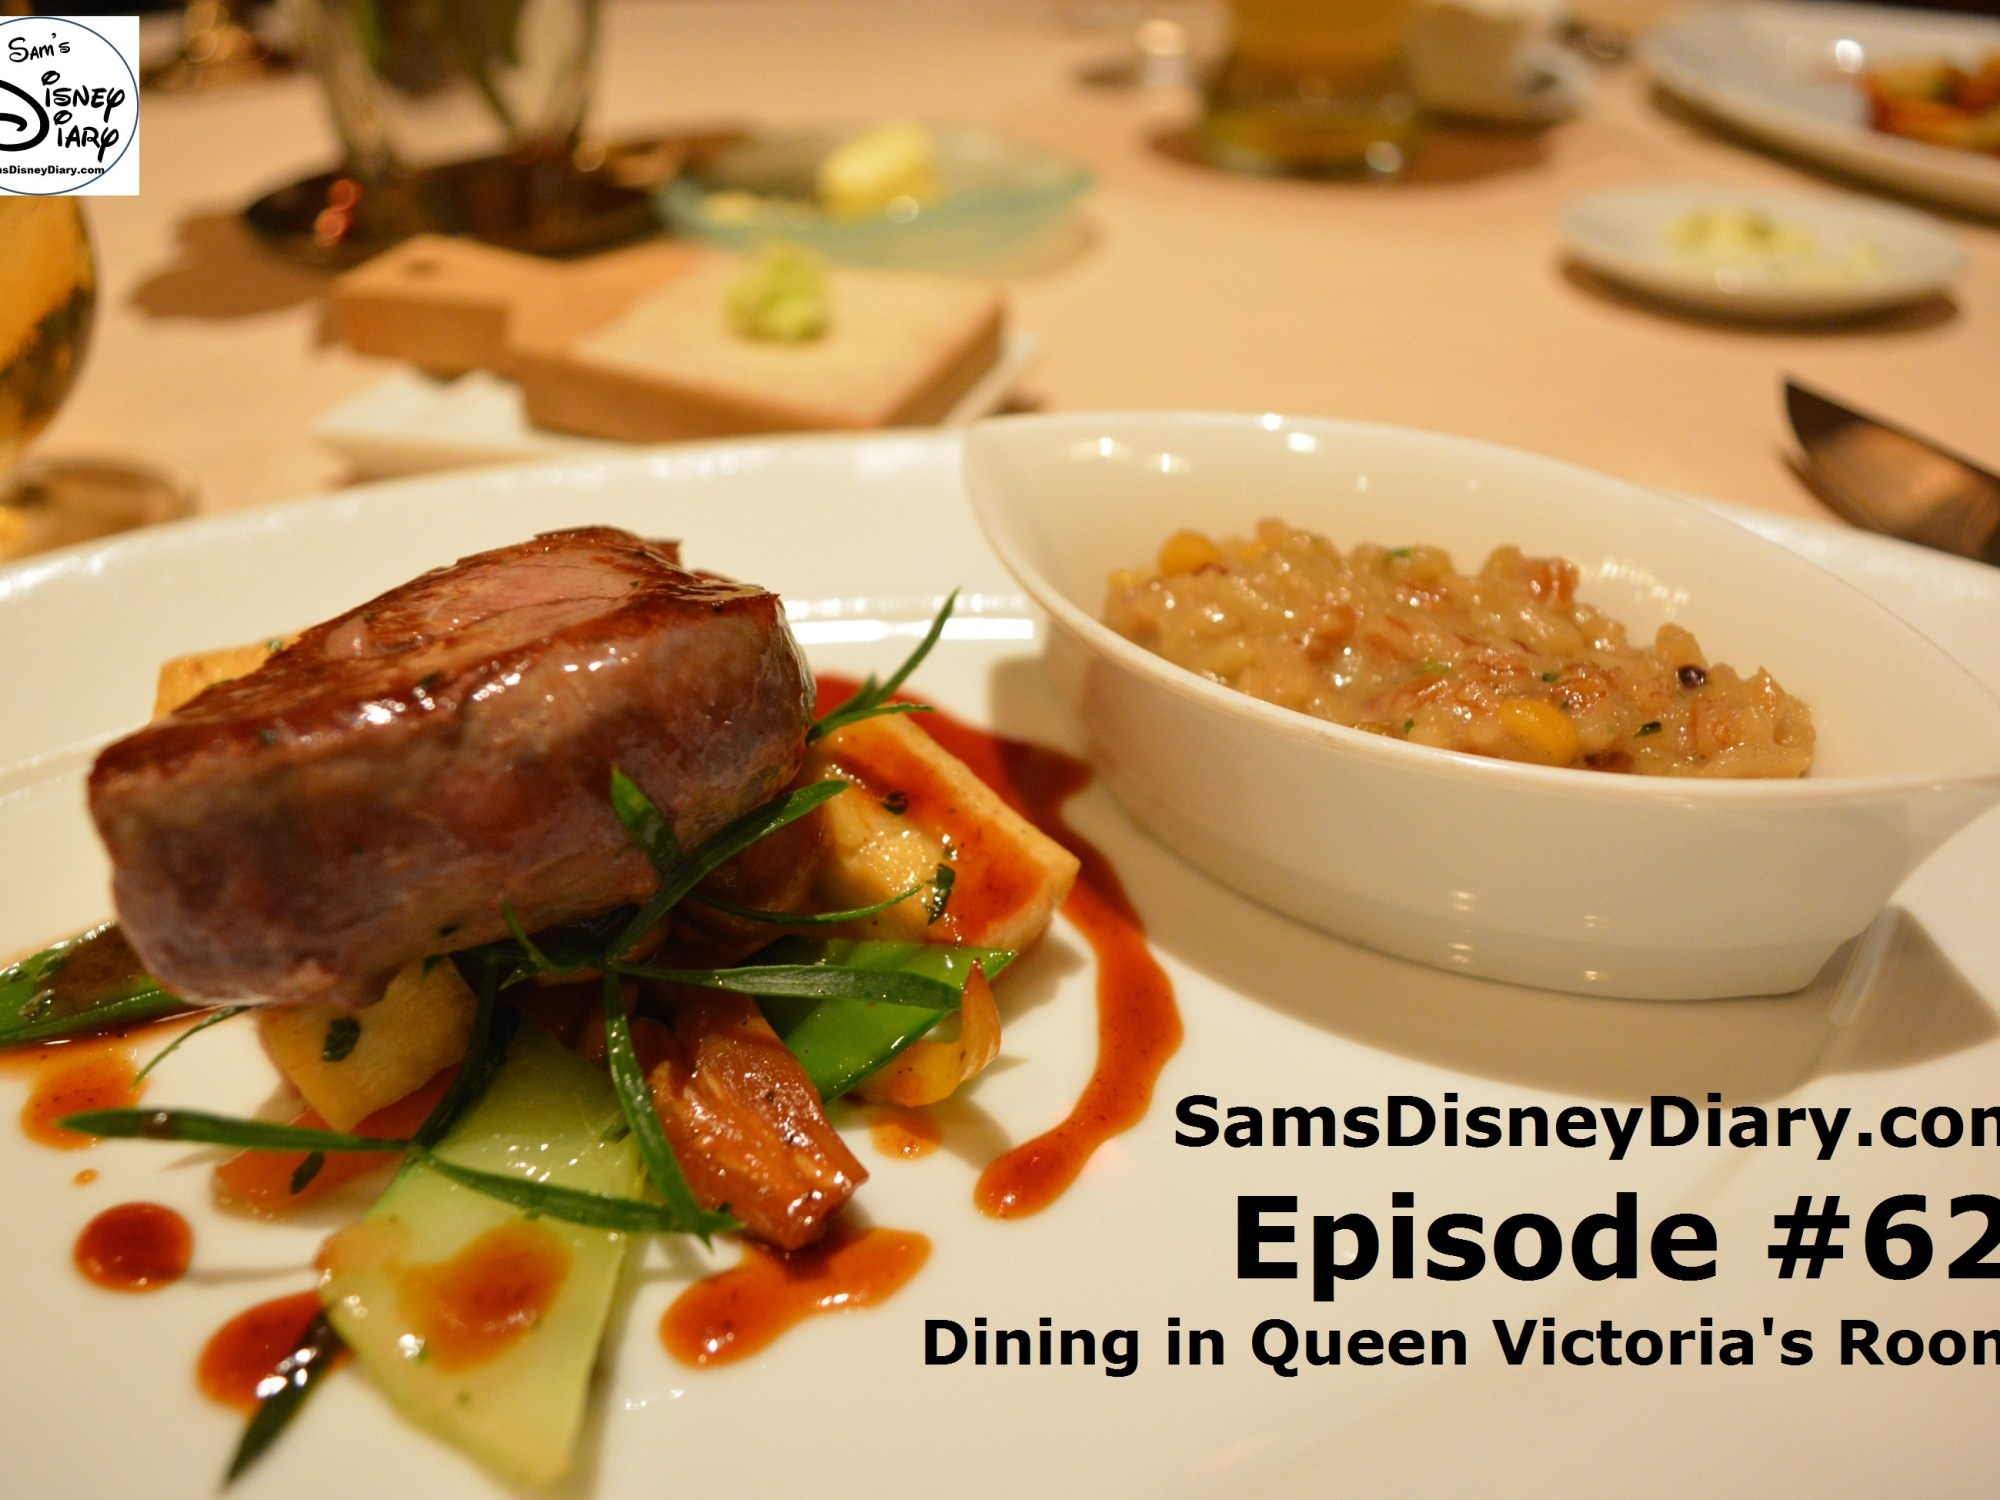 SamsDisneyDiary Episode #62: Dining in the Queen Victoria Room (Victoria and Albert's)